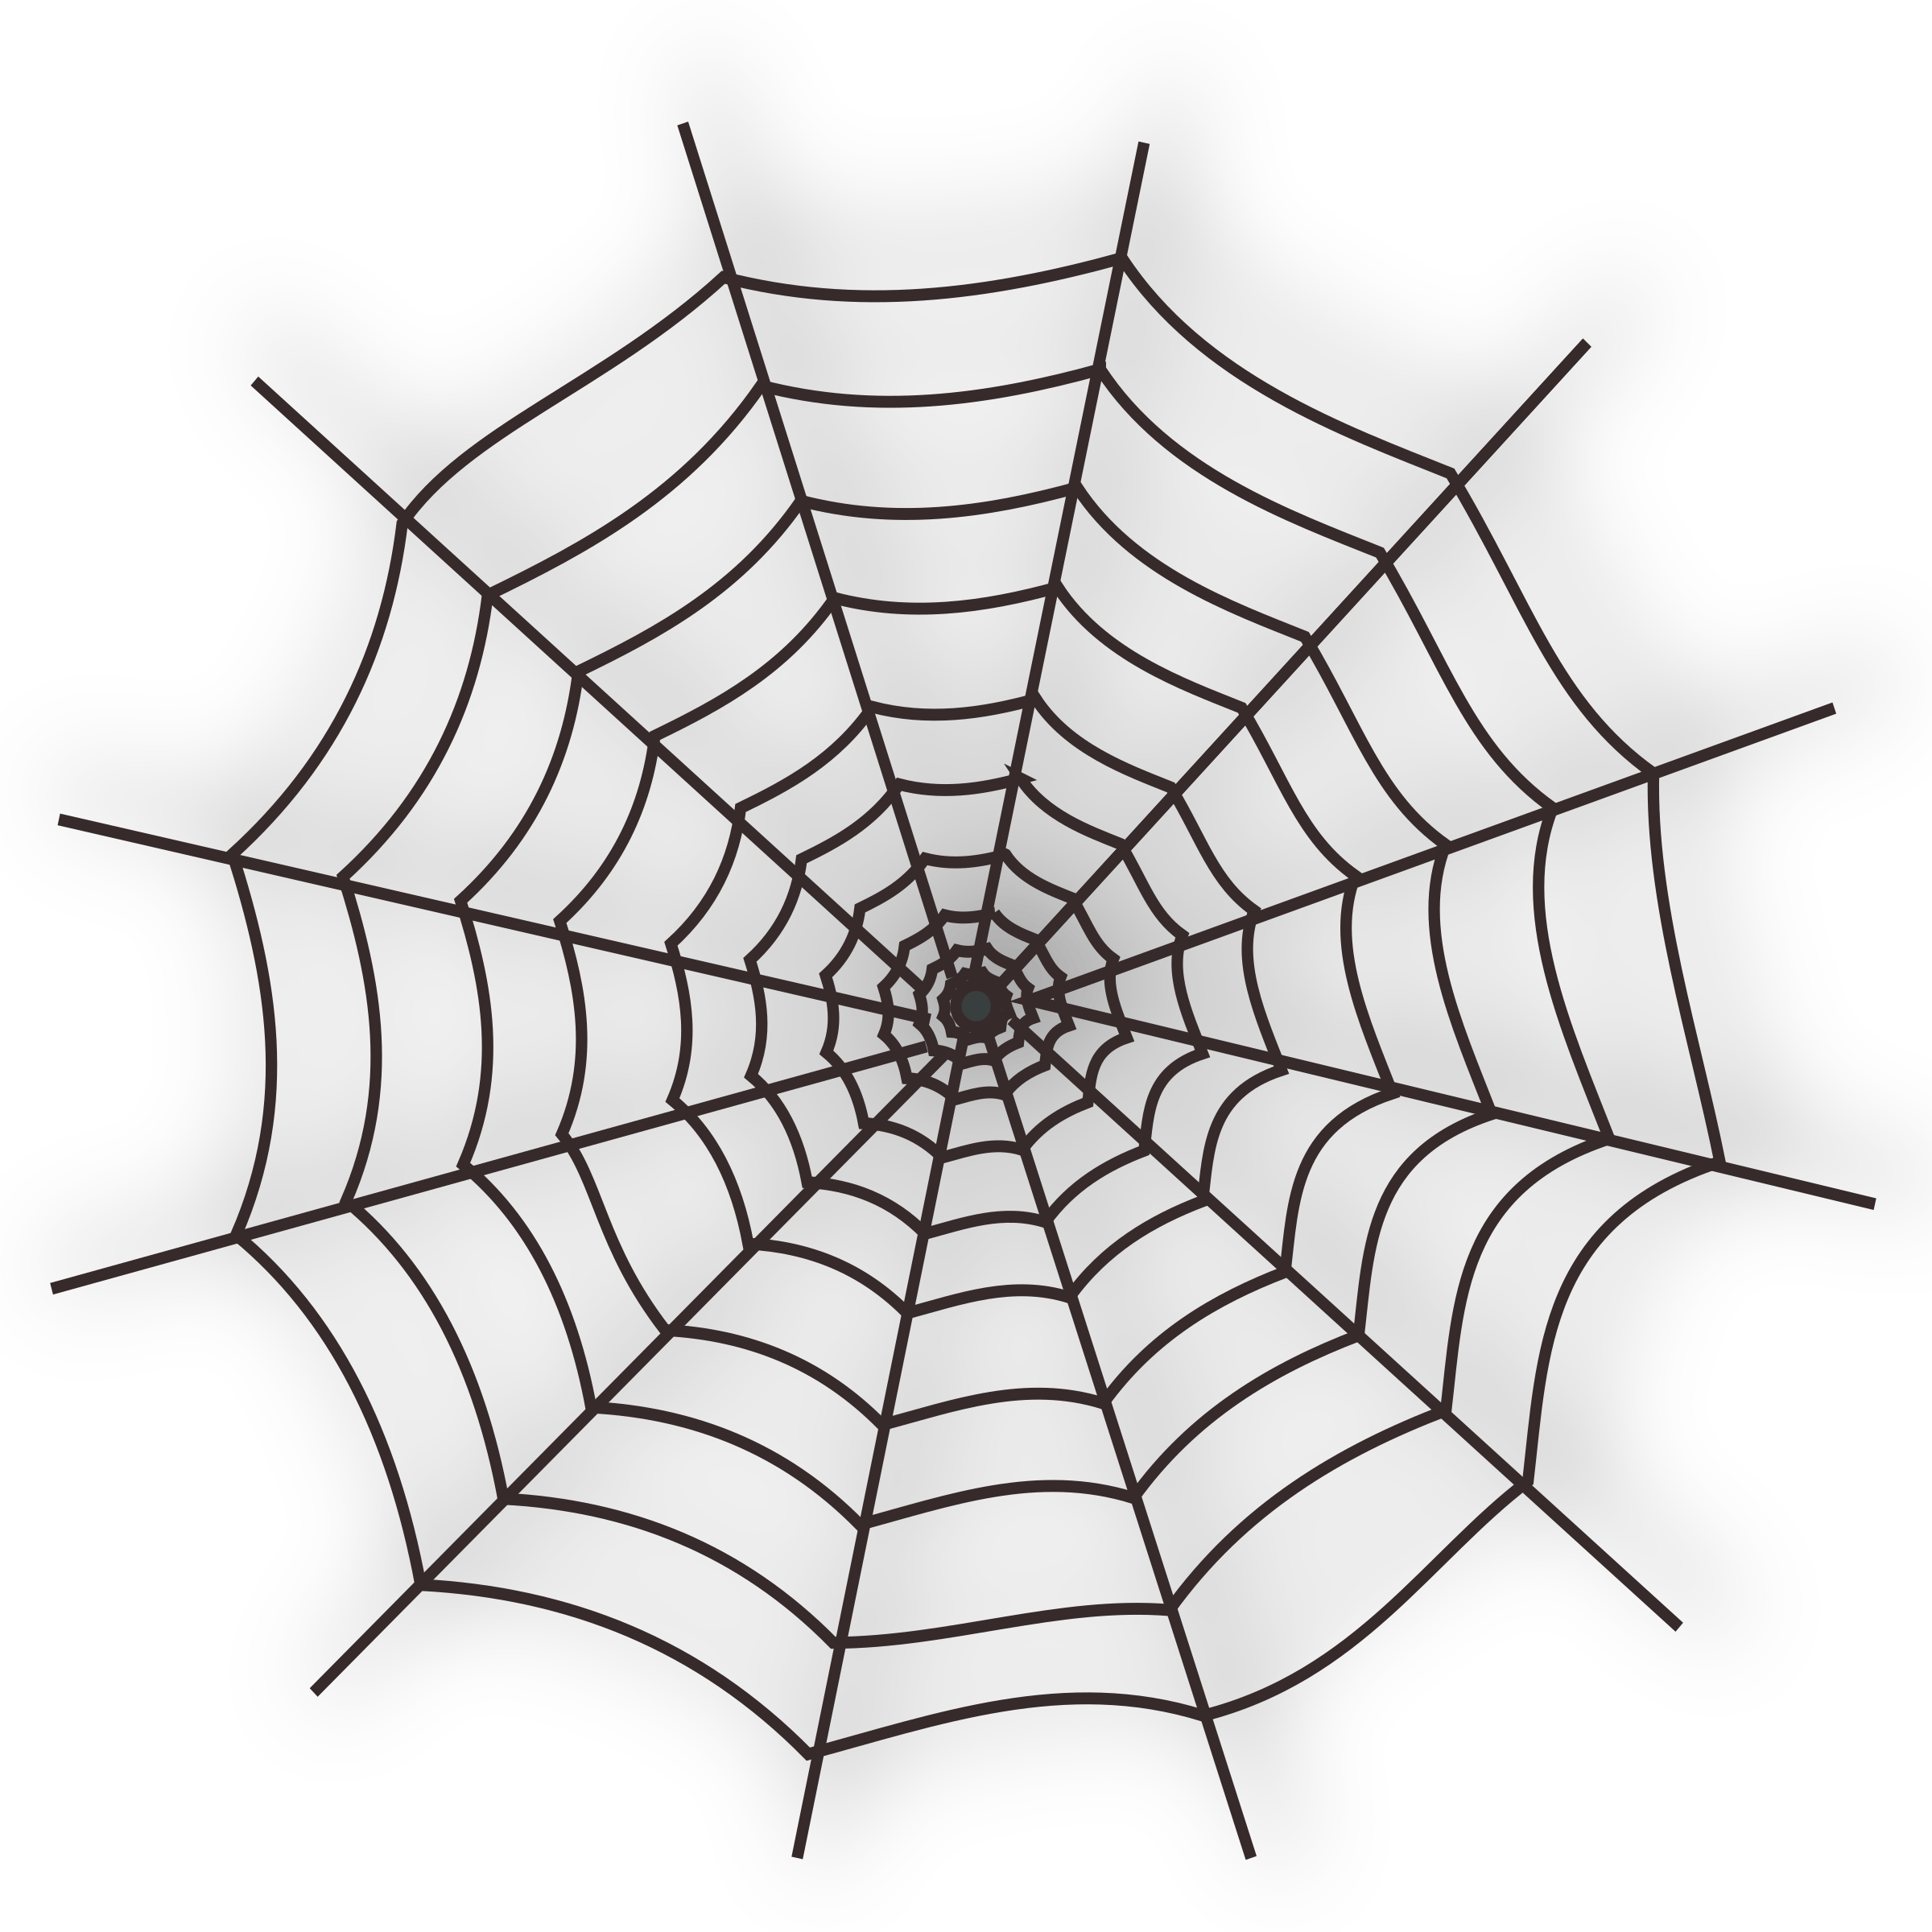 Svg web clipart. Halloween spider icon icons